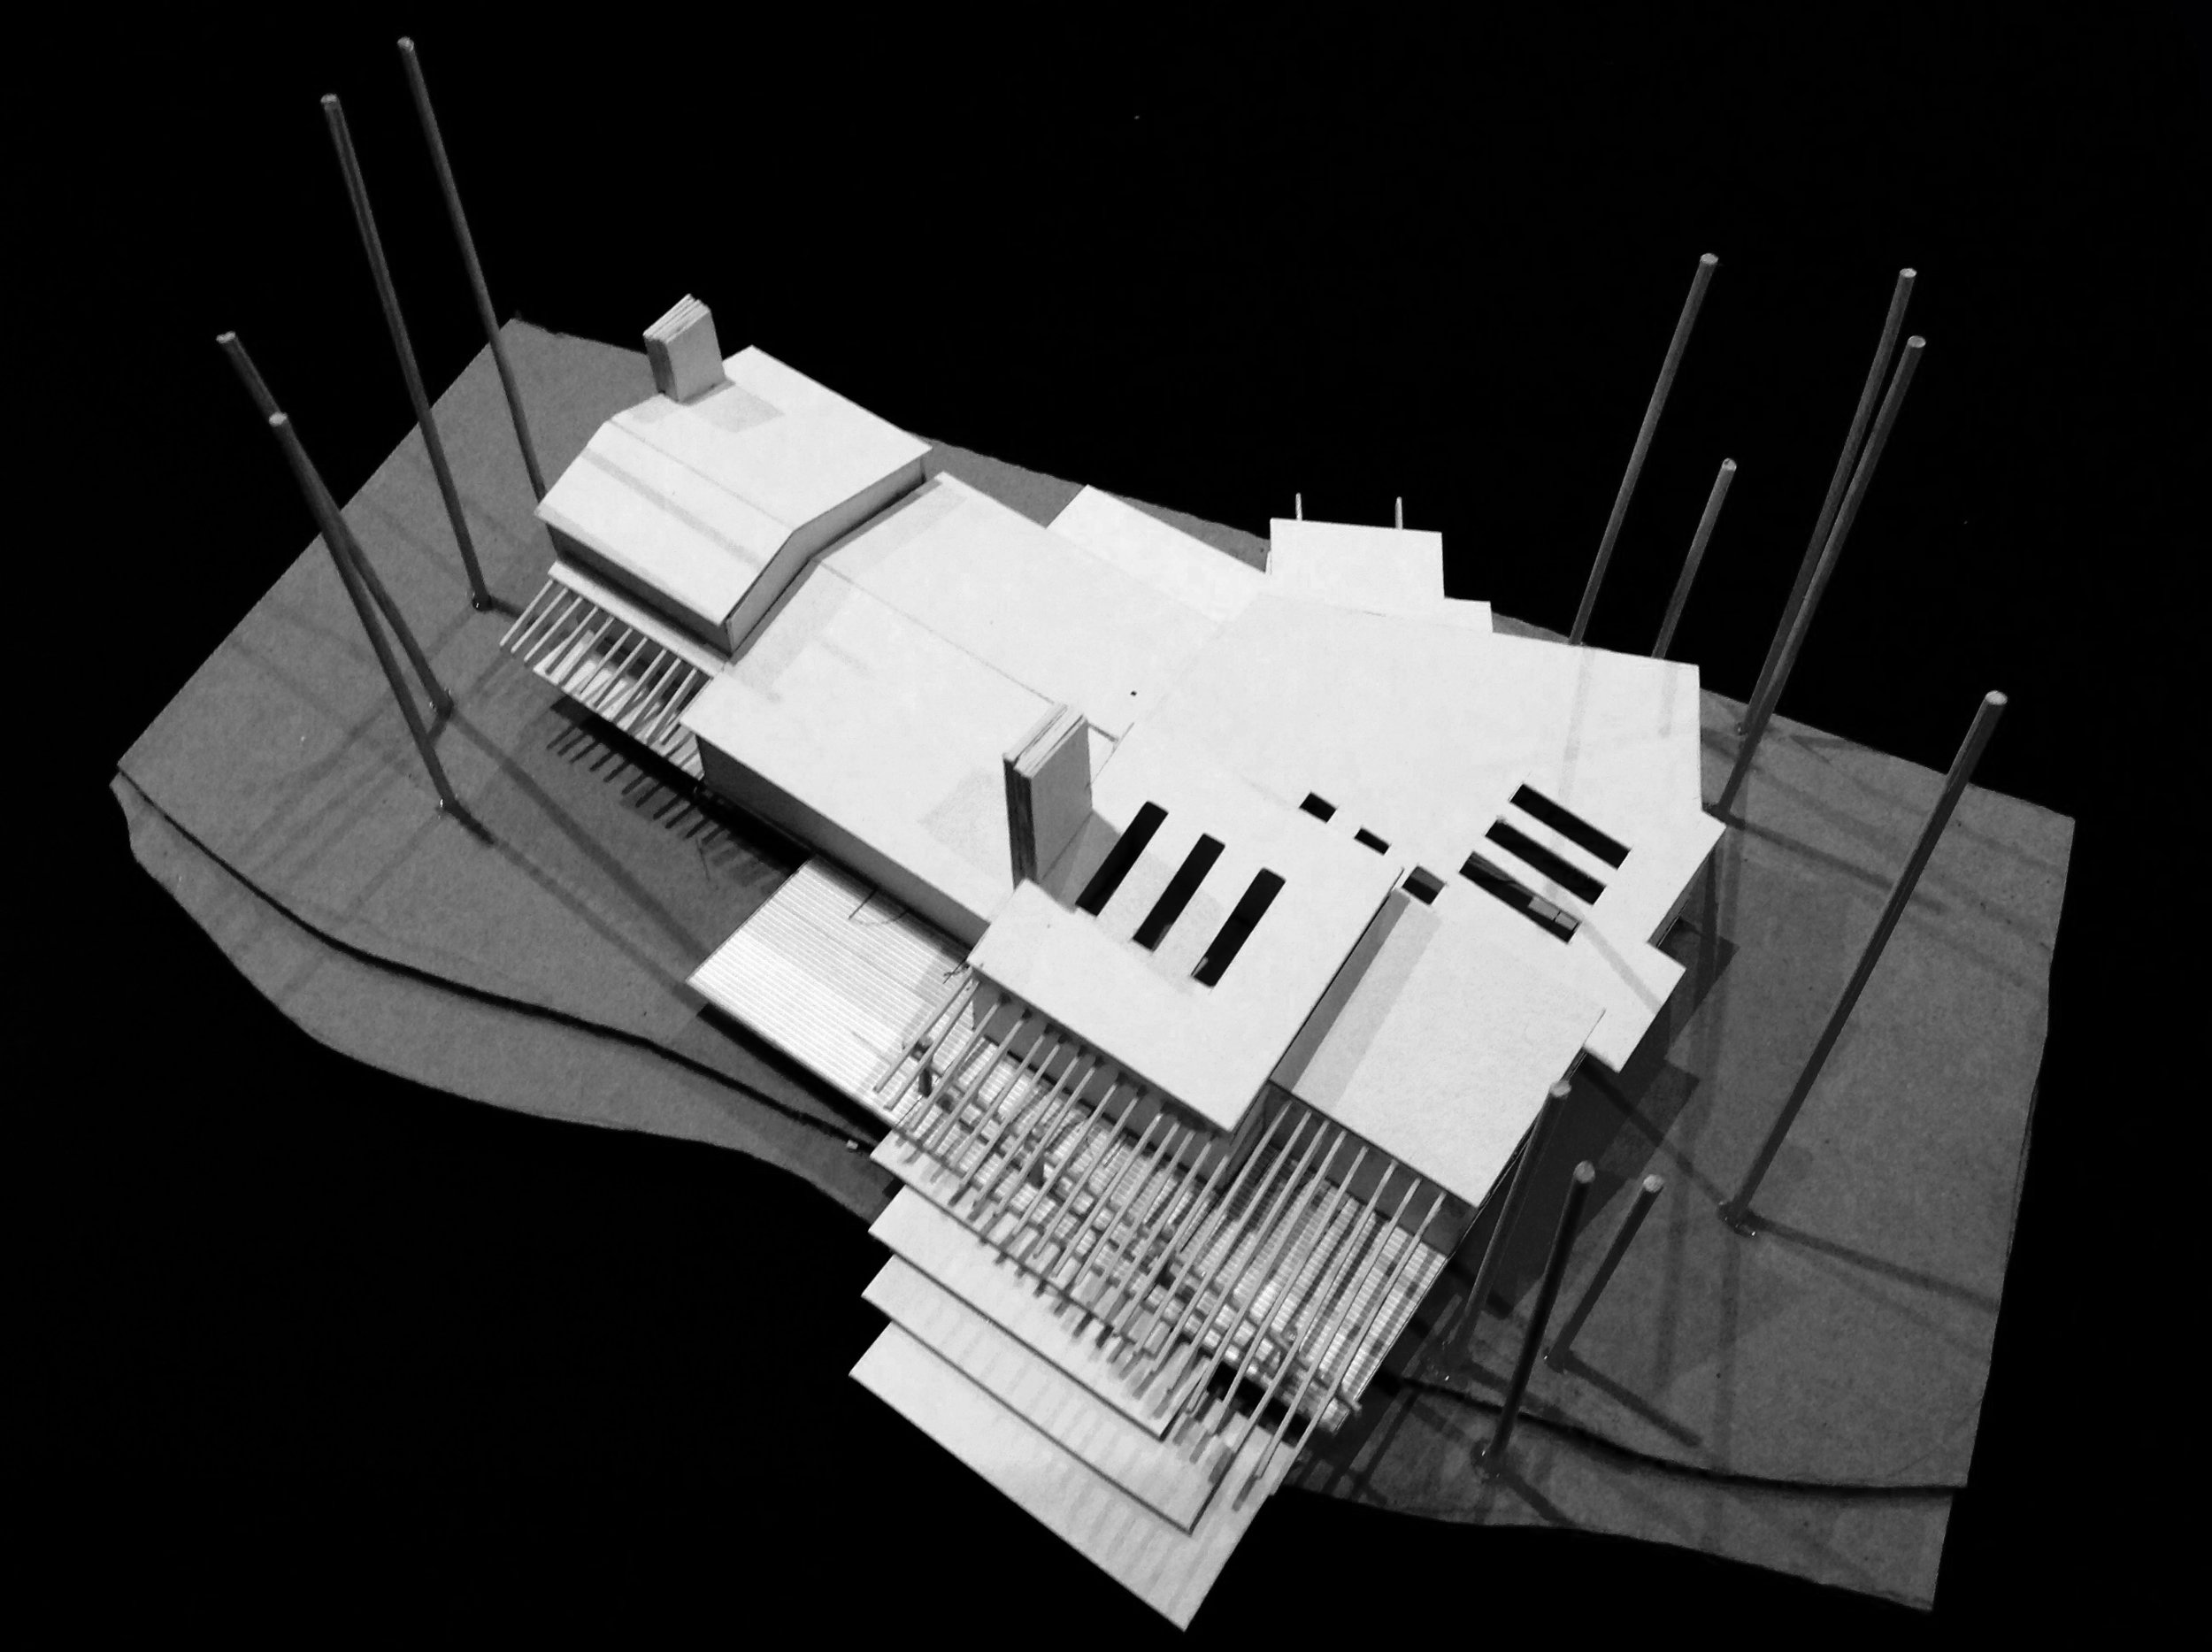 Option 1 Concept model north east arial view with high volume spaces